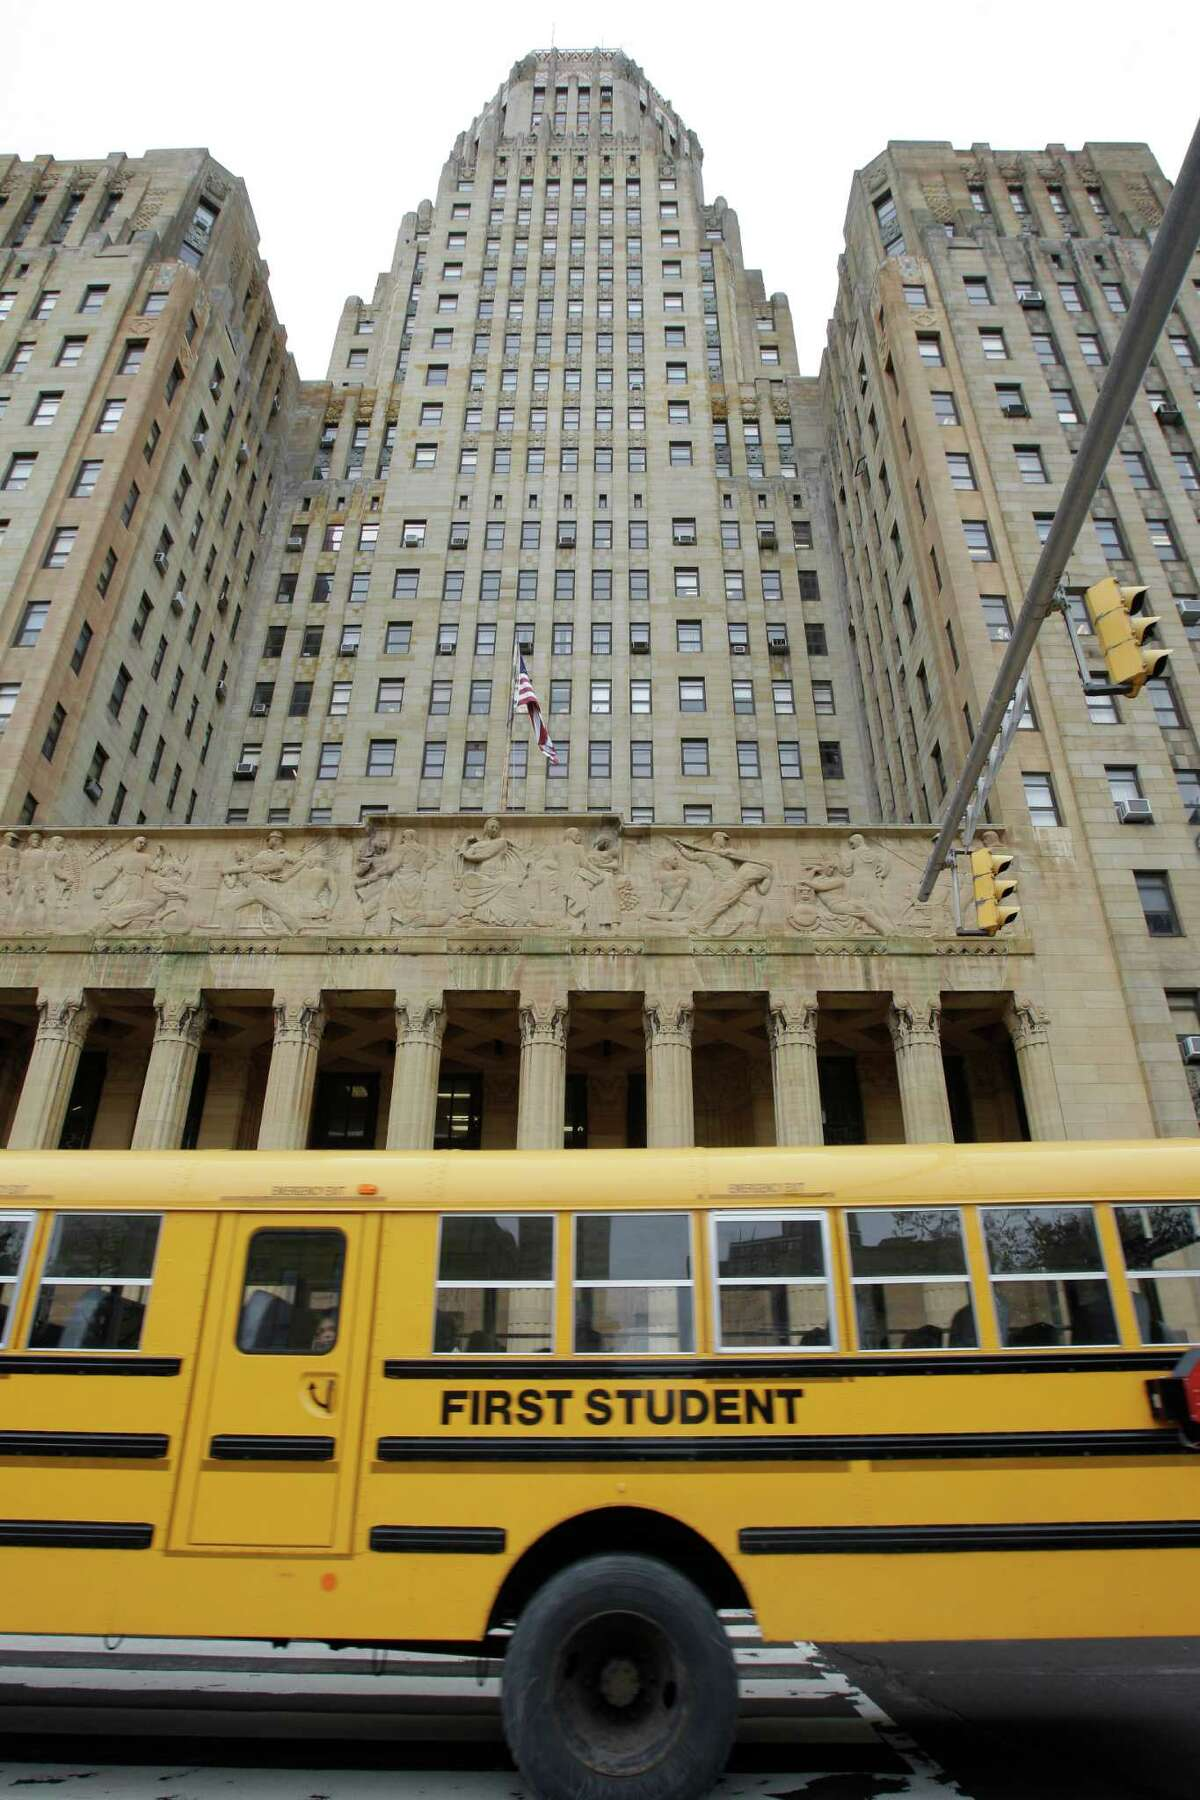 A school bus passes City Hall at a rally and Buffalo schools boycott Monday, May 16, 2011, in Buffalo, N.Y. Some parents in Buffalo kept their children out of class Monday and then gathered on the steps of City Hall to protest the city school system's low graduation rates and underperforming schools. (AP Photo/David Duprey)